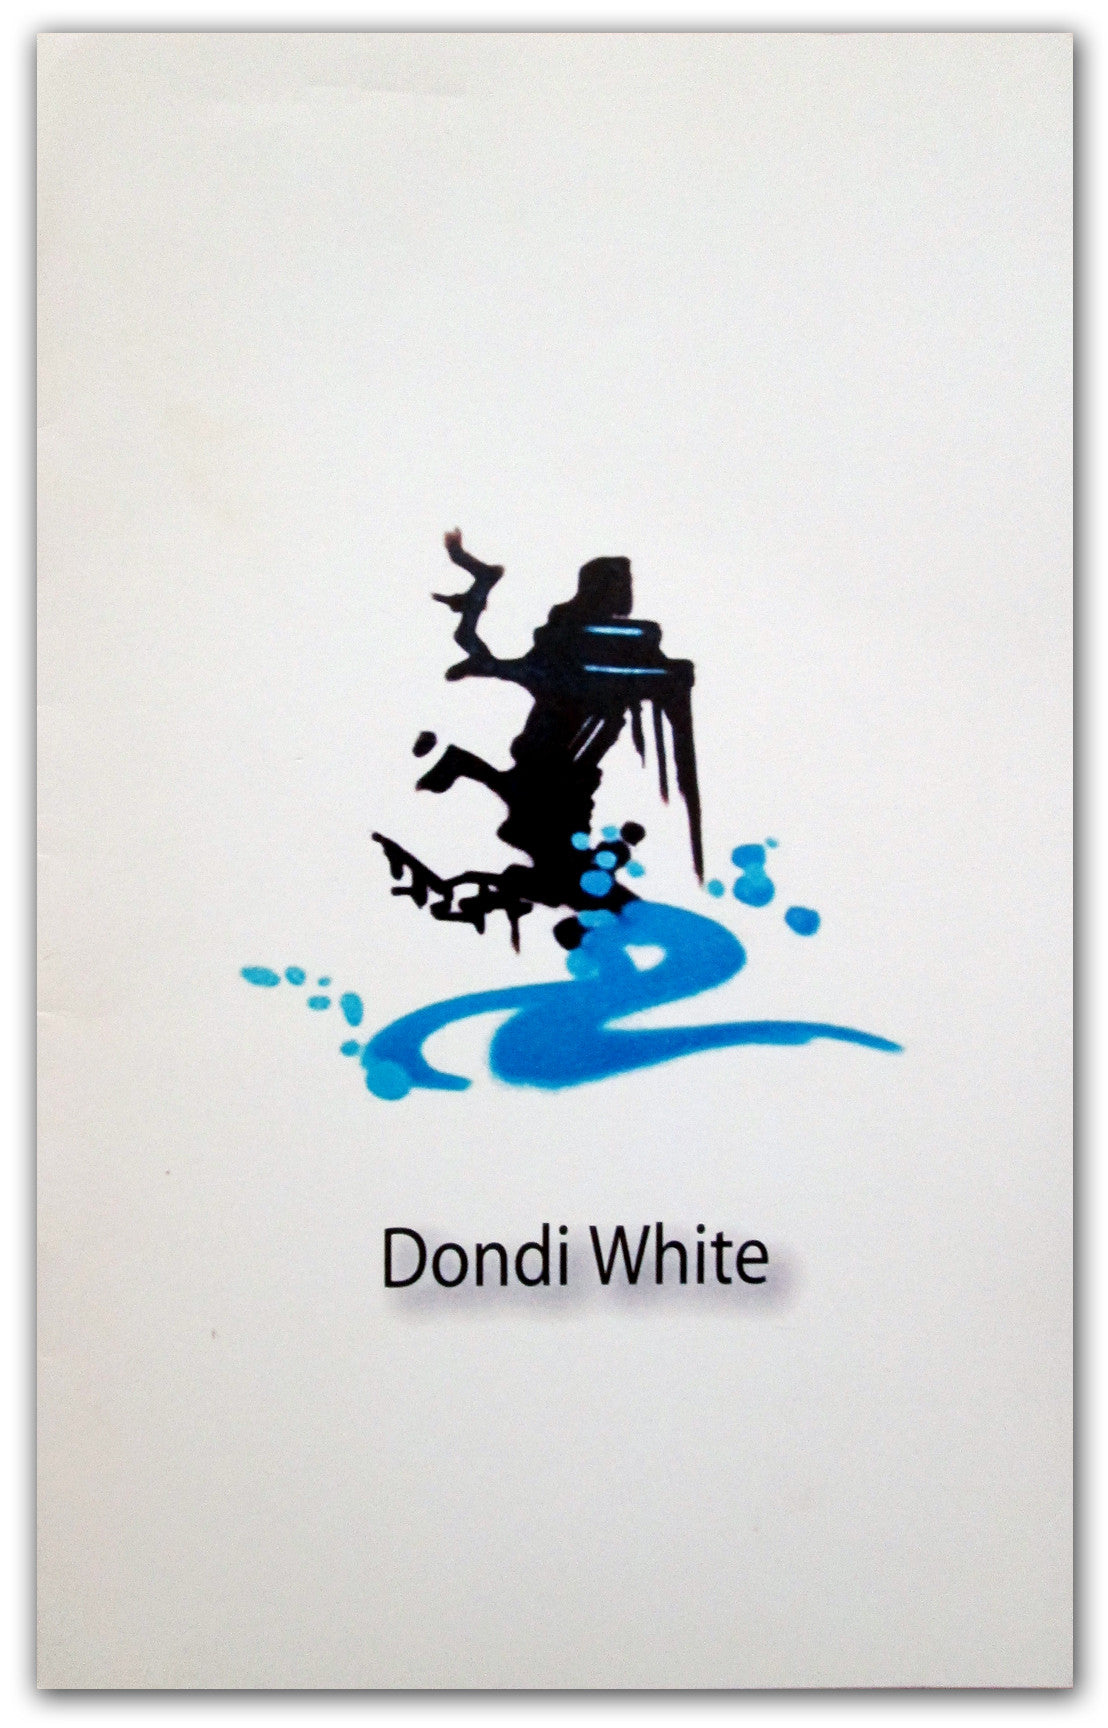 DONDI WHITE - Booklet/Zine